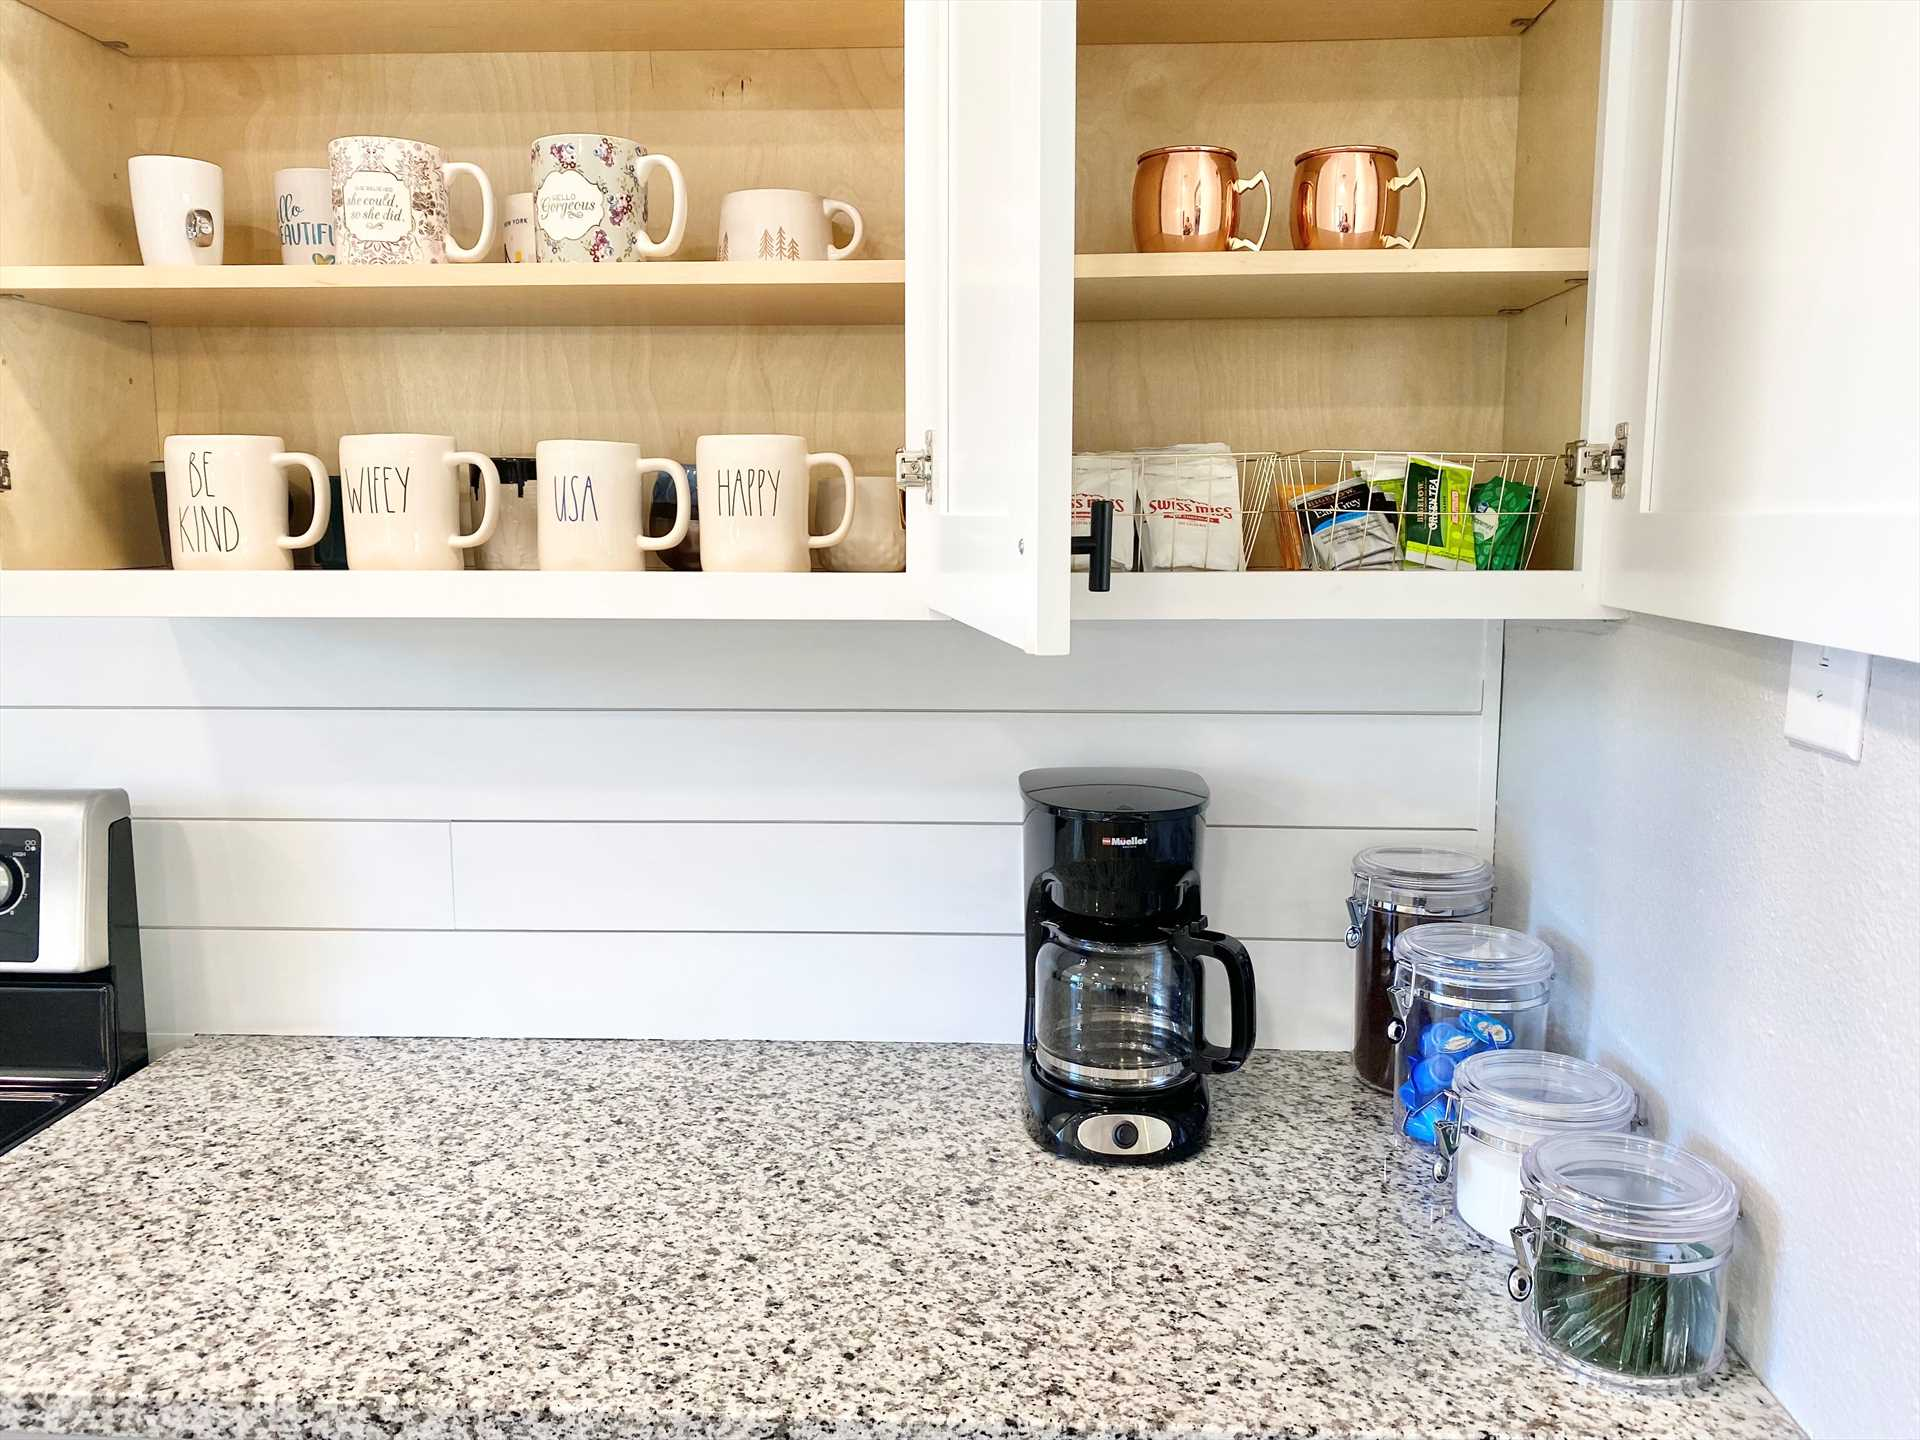 Coffee, tea, hot chocolate, and cups are provided for those all-important morning pick-me-ups. There's also plenty of cookware, utensils, and serving ware here.